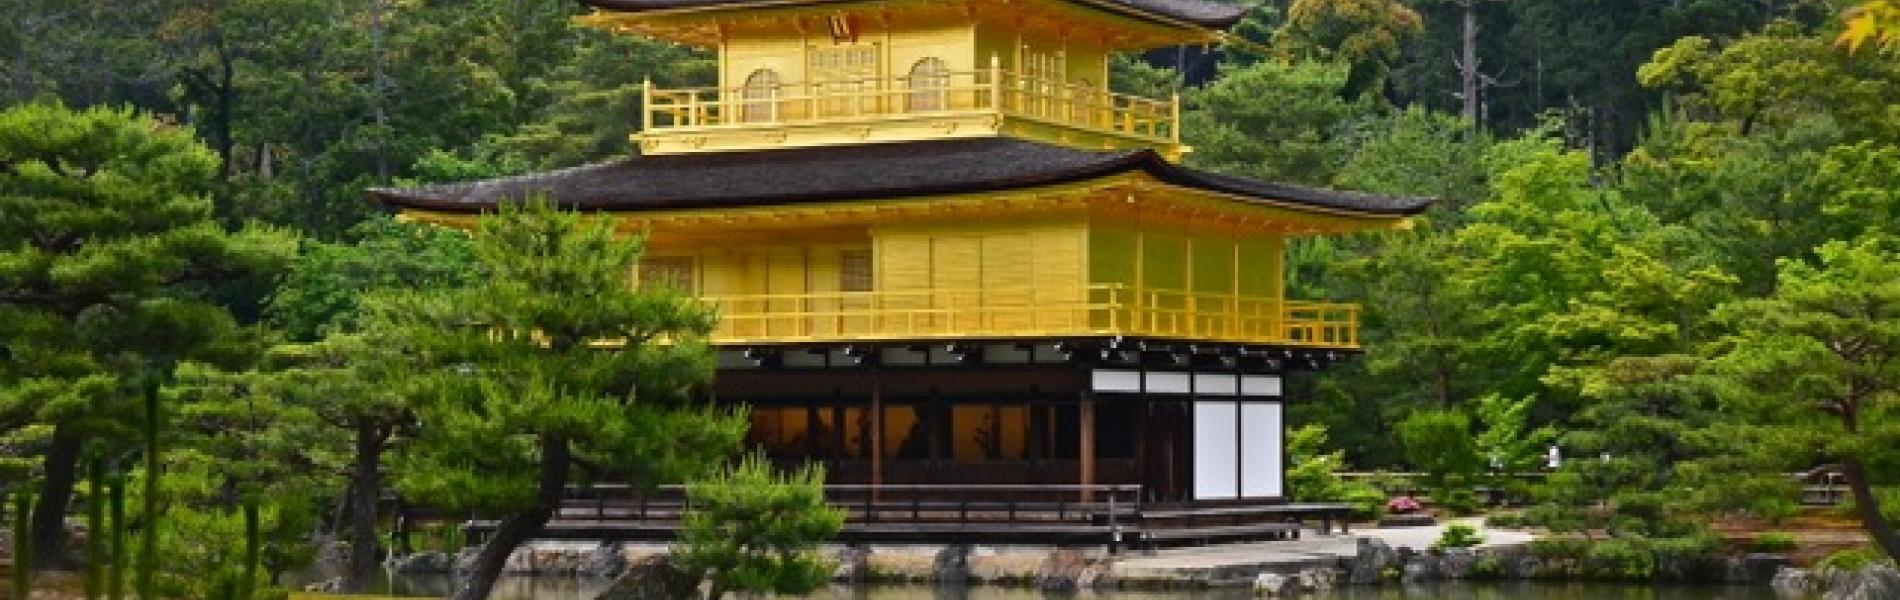 Japan Field Studies: History and Culture 2018